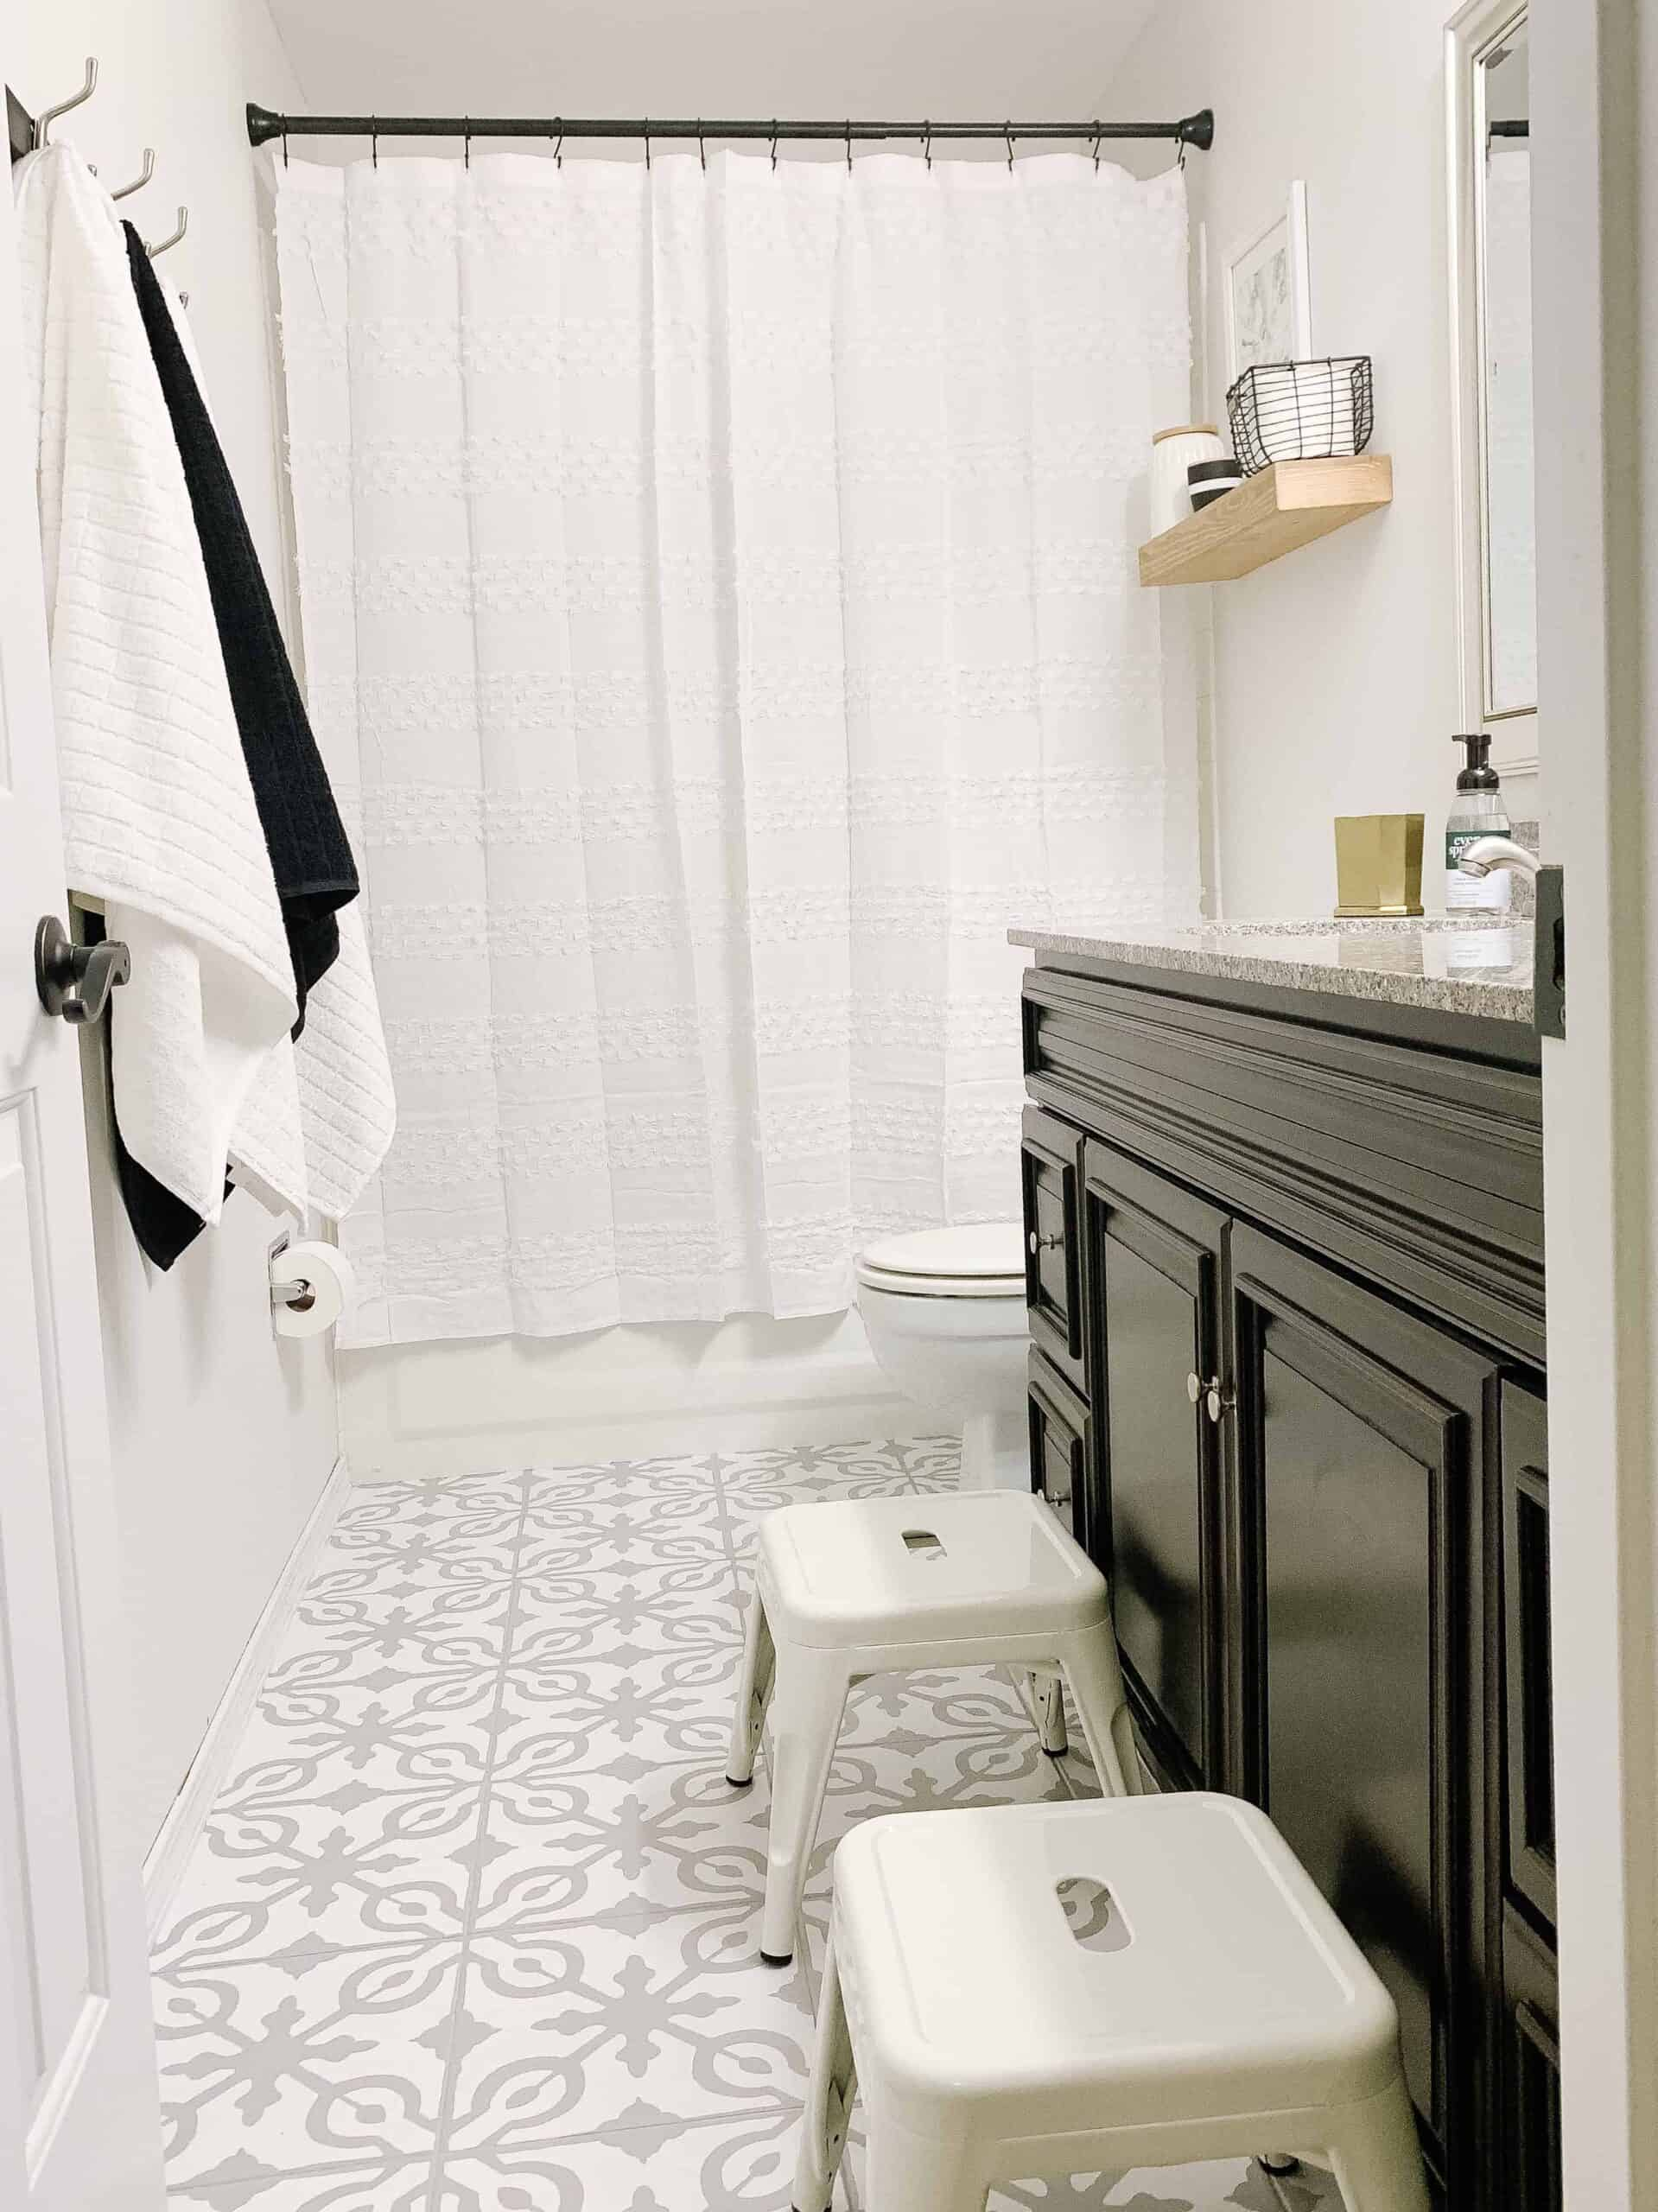 Bathroom with painted tile floors